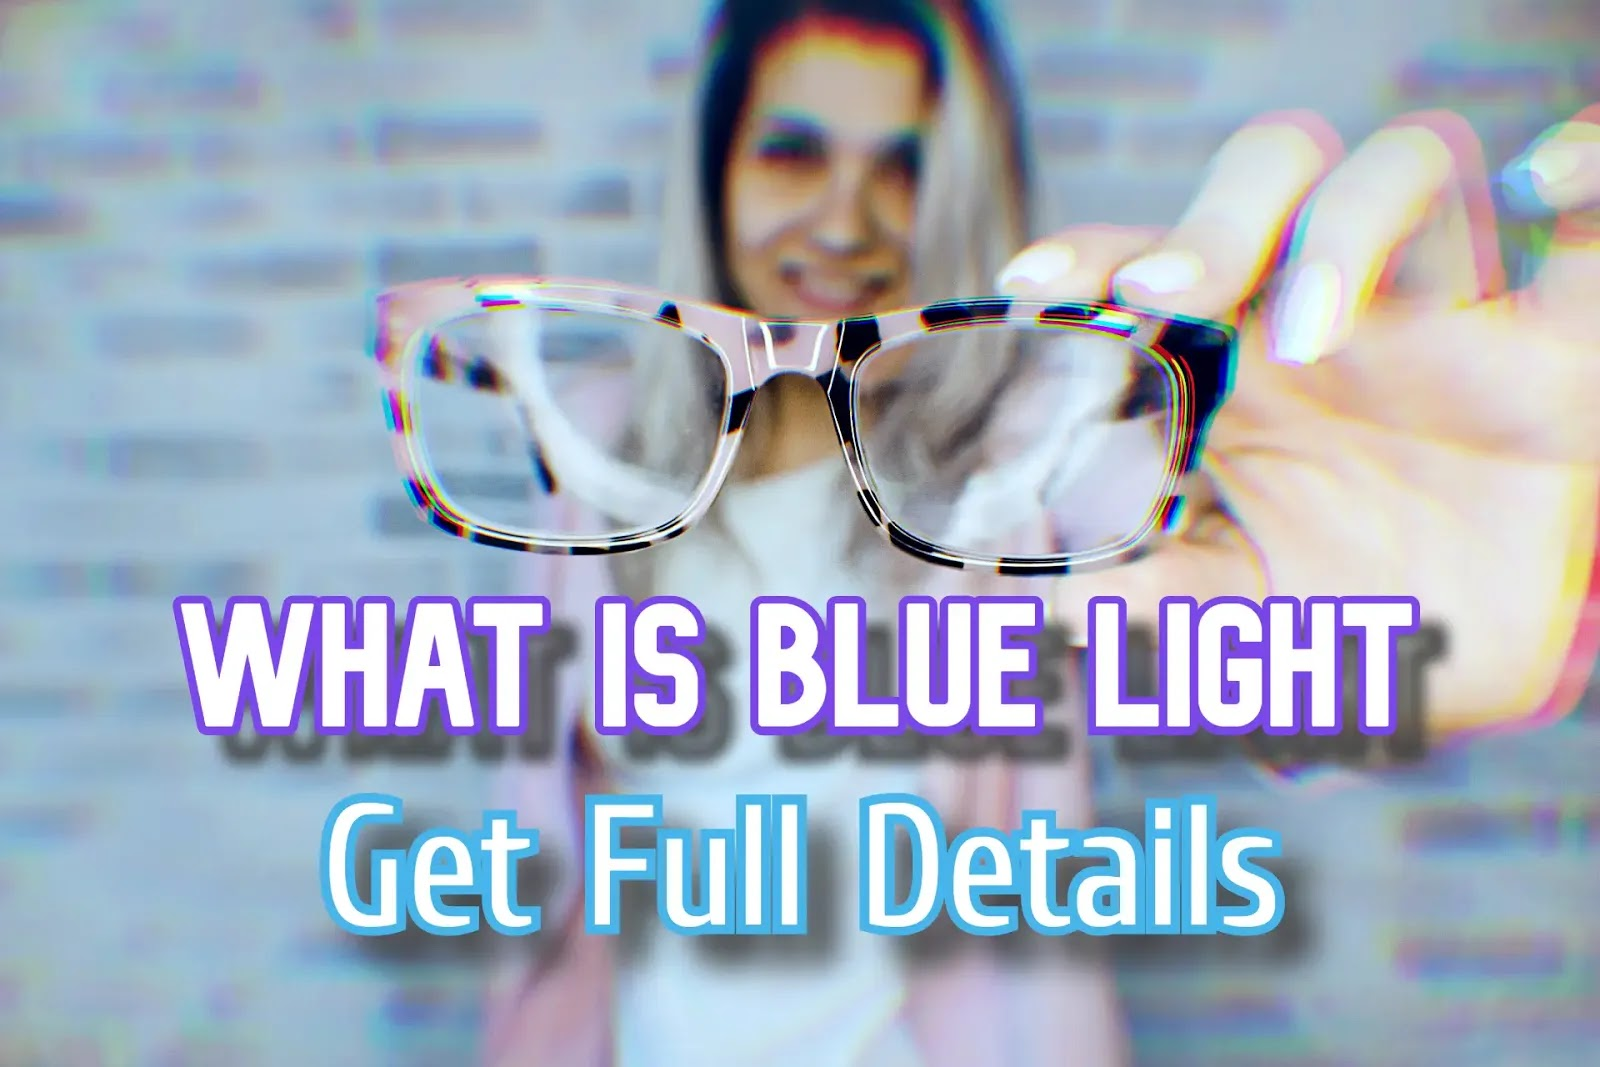 What is Blue Light? Full Details About Blue Light! 2020